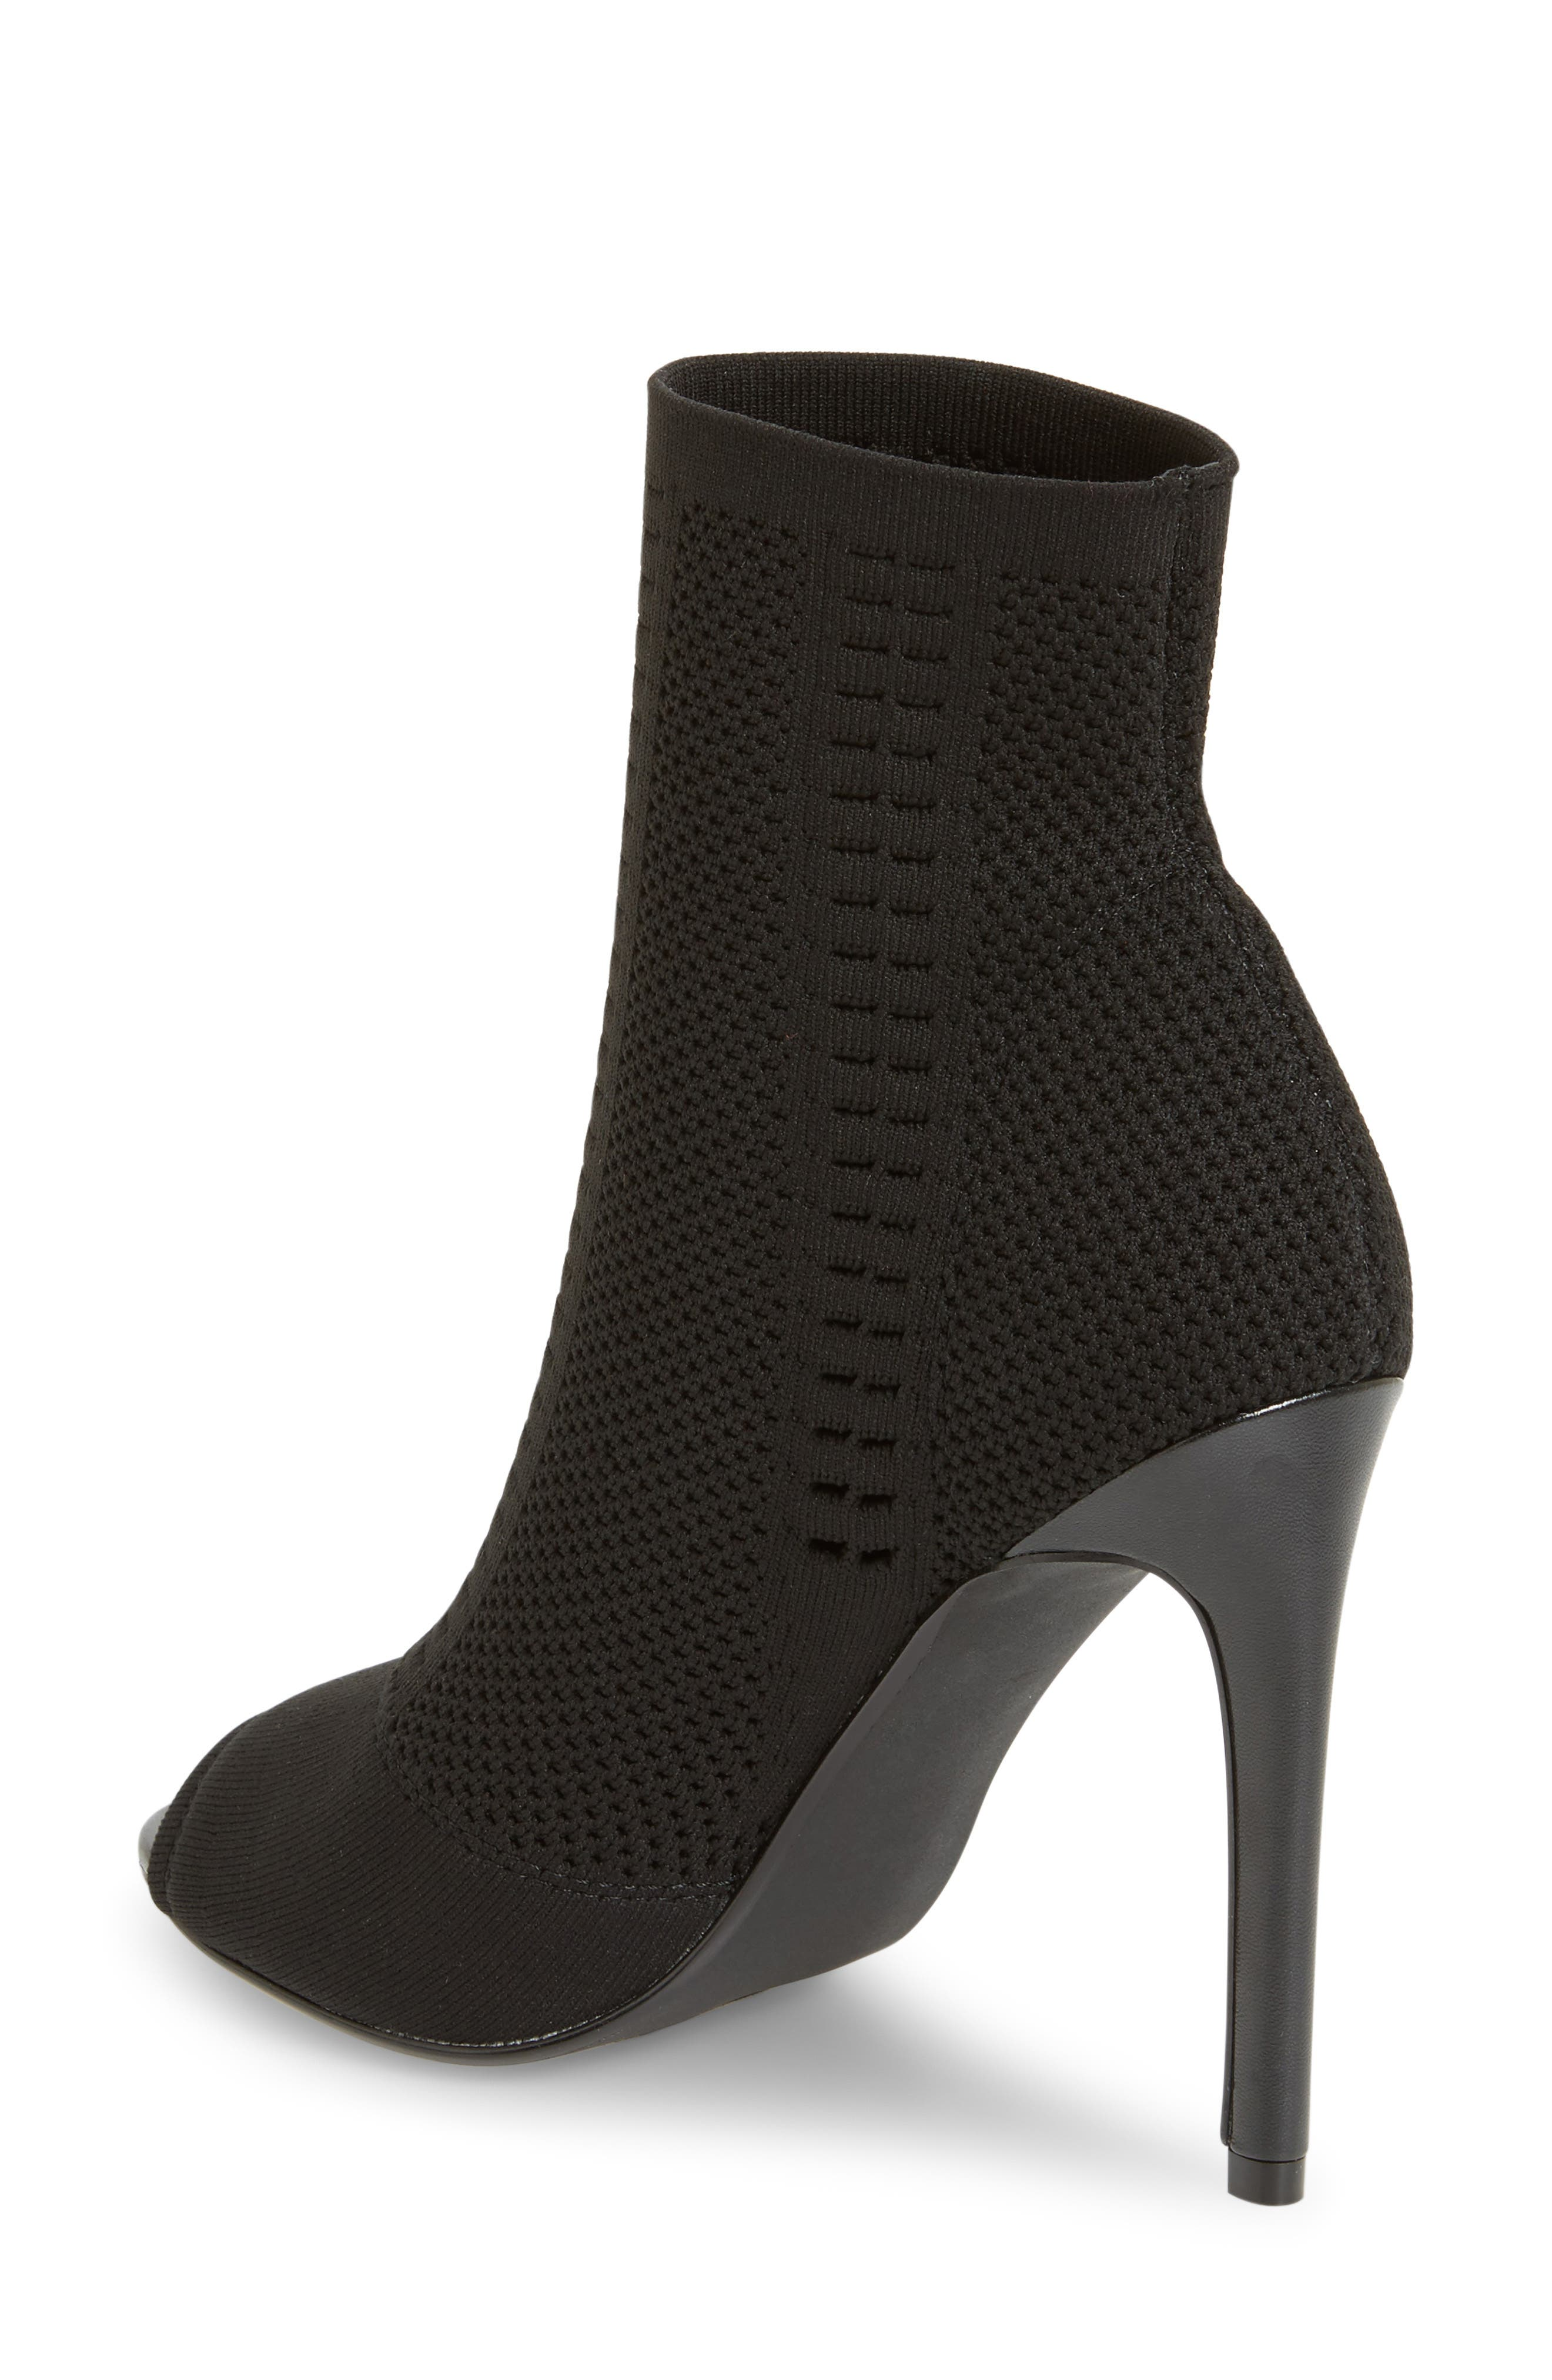 Candid Knit Bootie,                             Alternate thumbnail 2, color,                             009